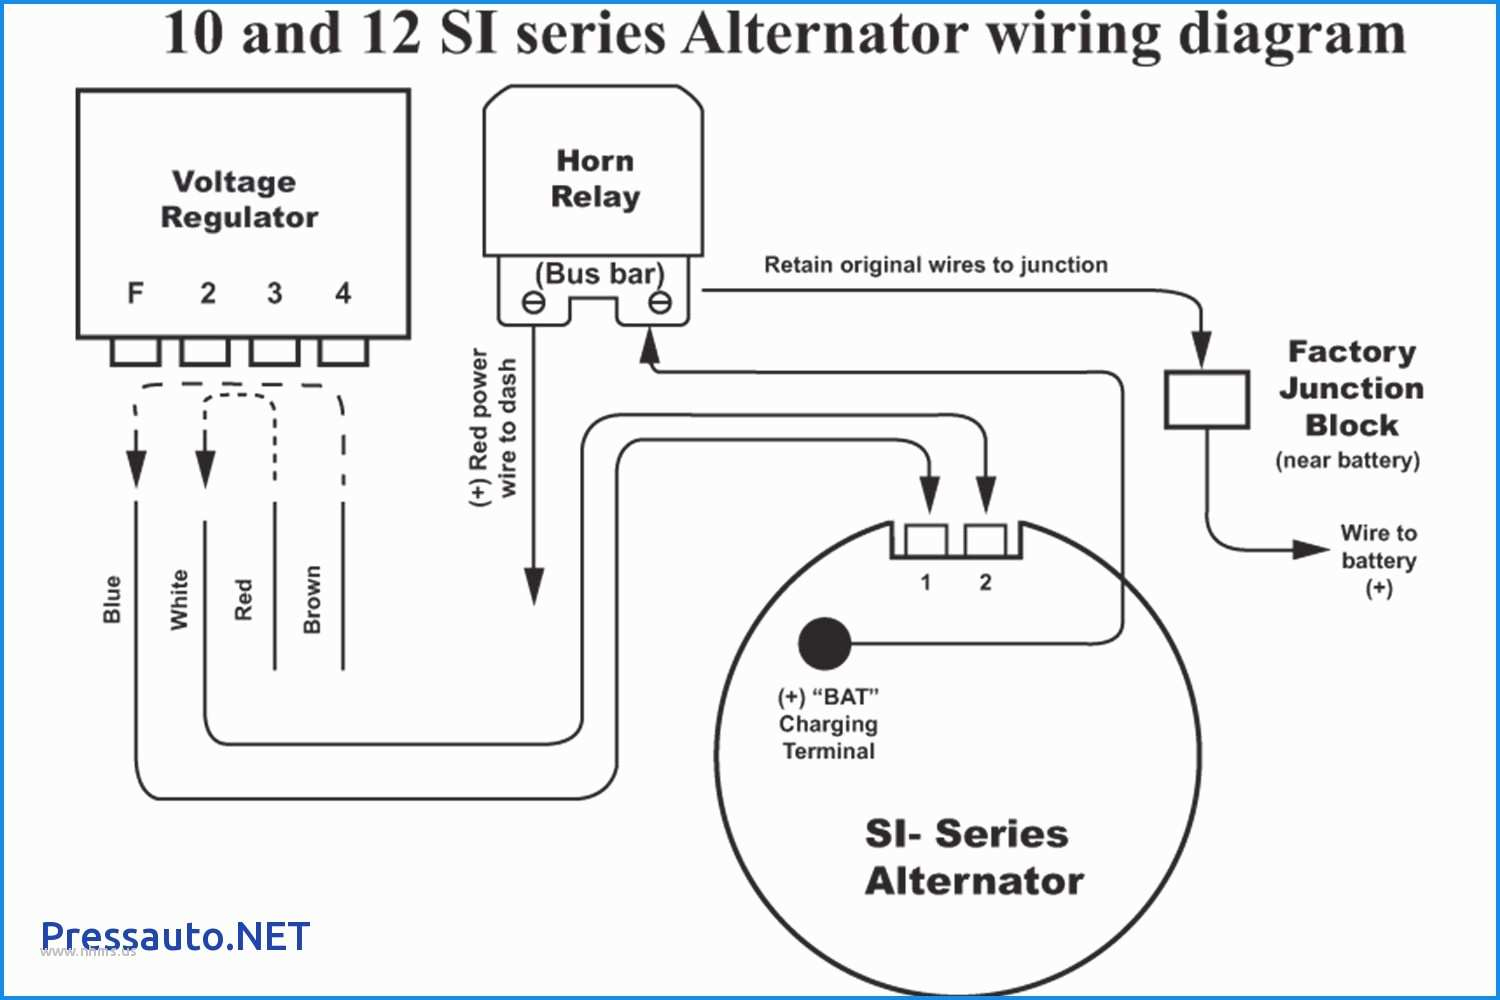 [DIAGRAM] Drive Works Alternator Wire Diagram 1 FULL